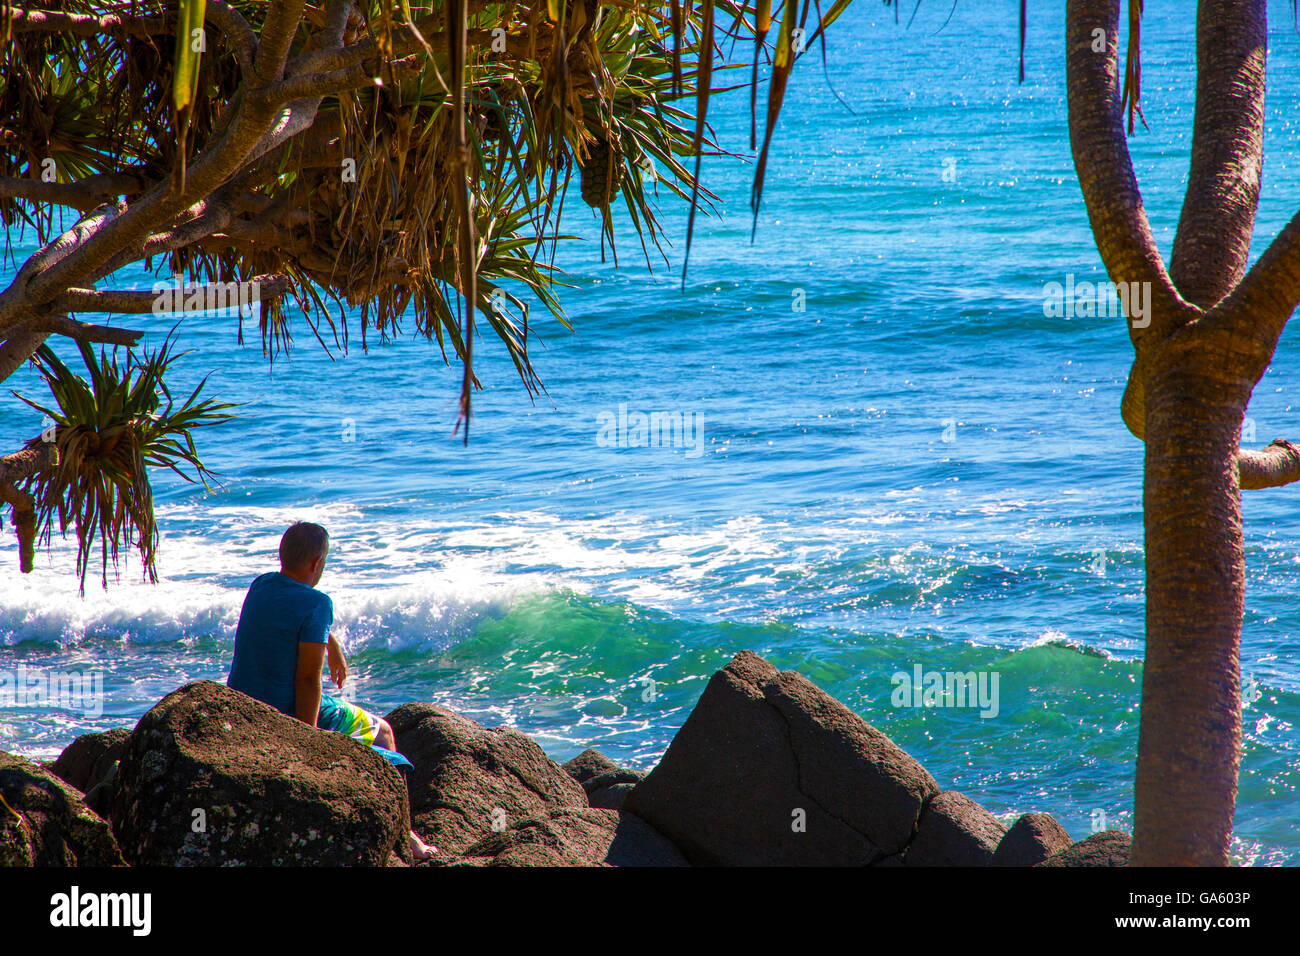 Man sitting on rocks gazing at the Pacific Ocean at Burleigh Heads Australia - Stock Image